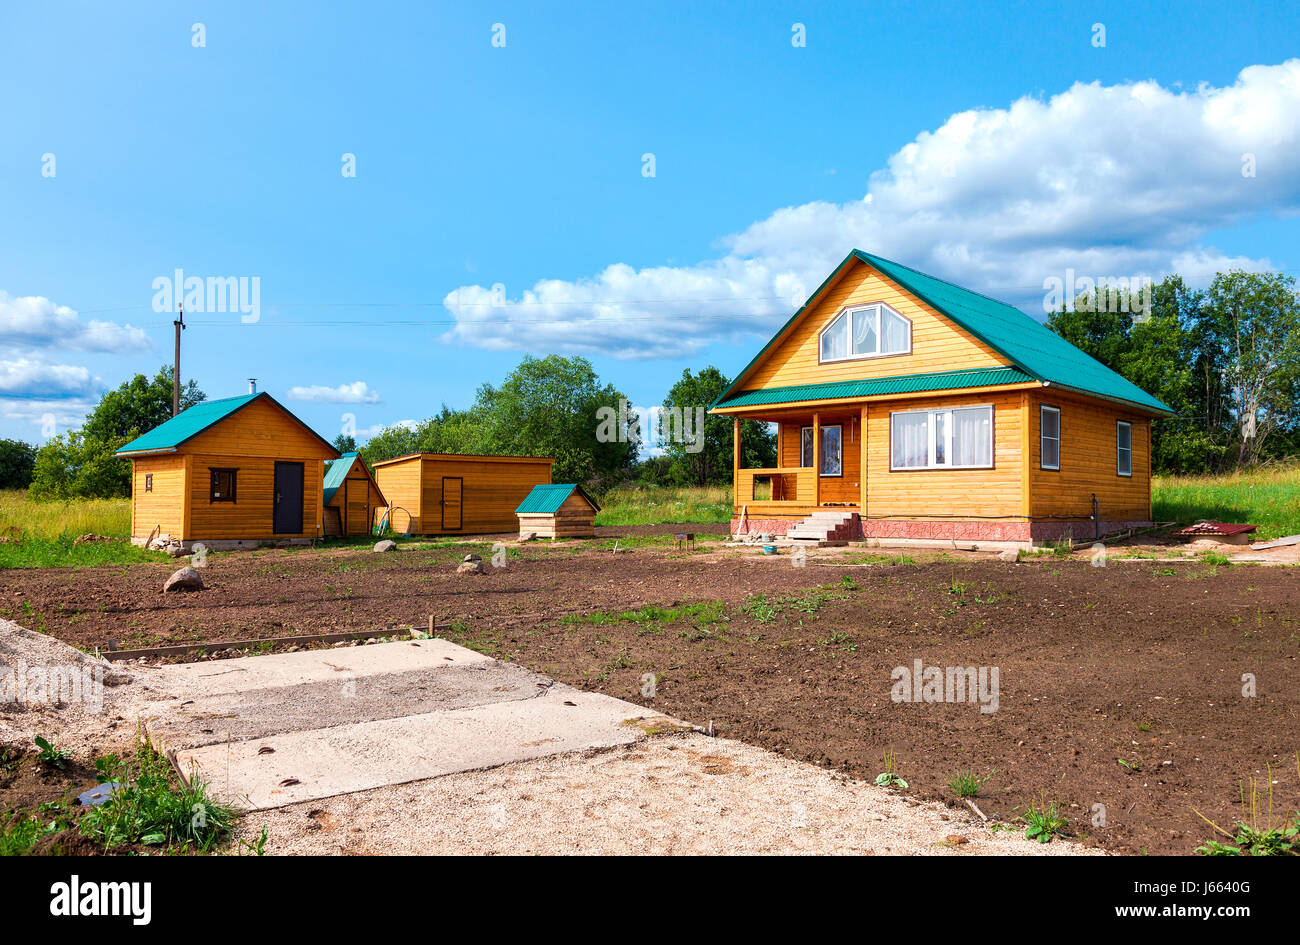 Country Outbuildings Stock Photos Amp Country Outbuildings